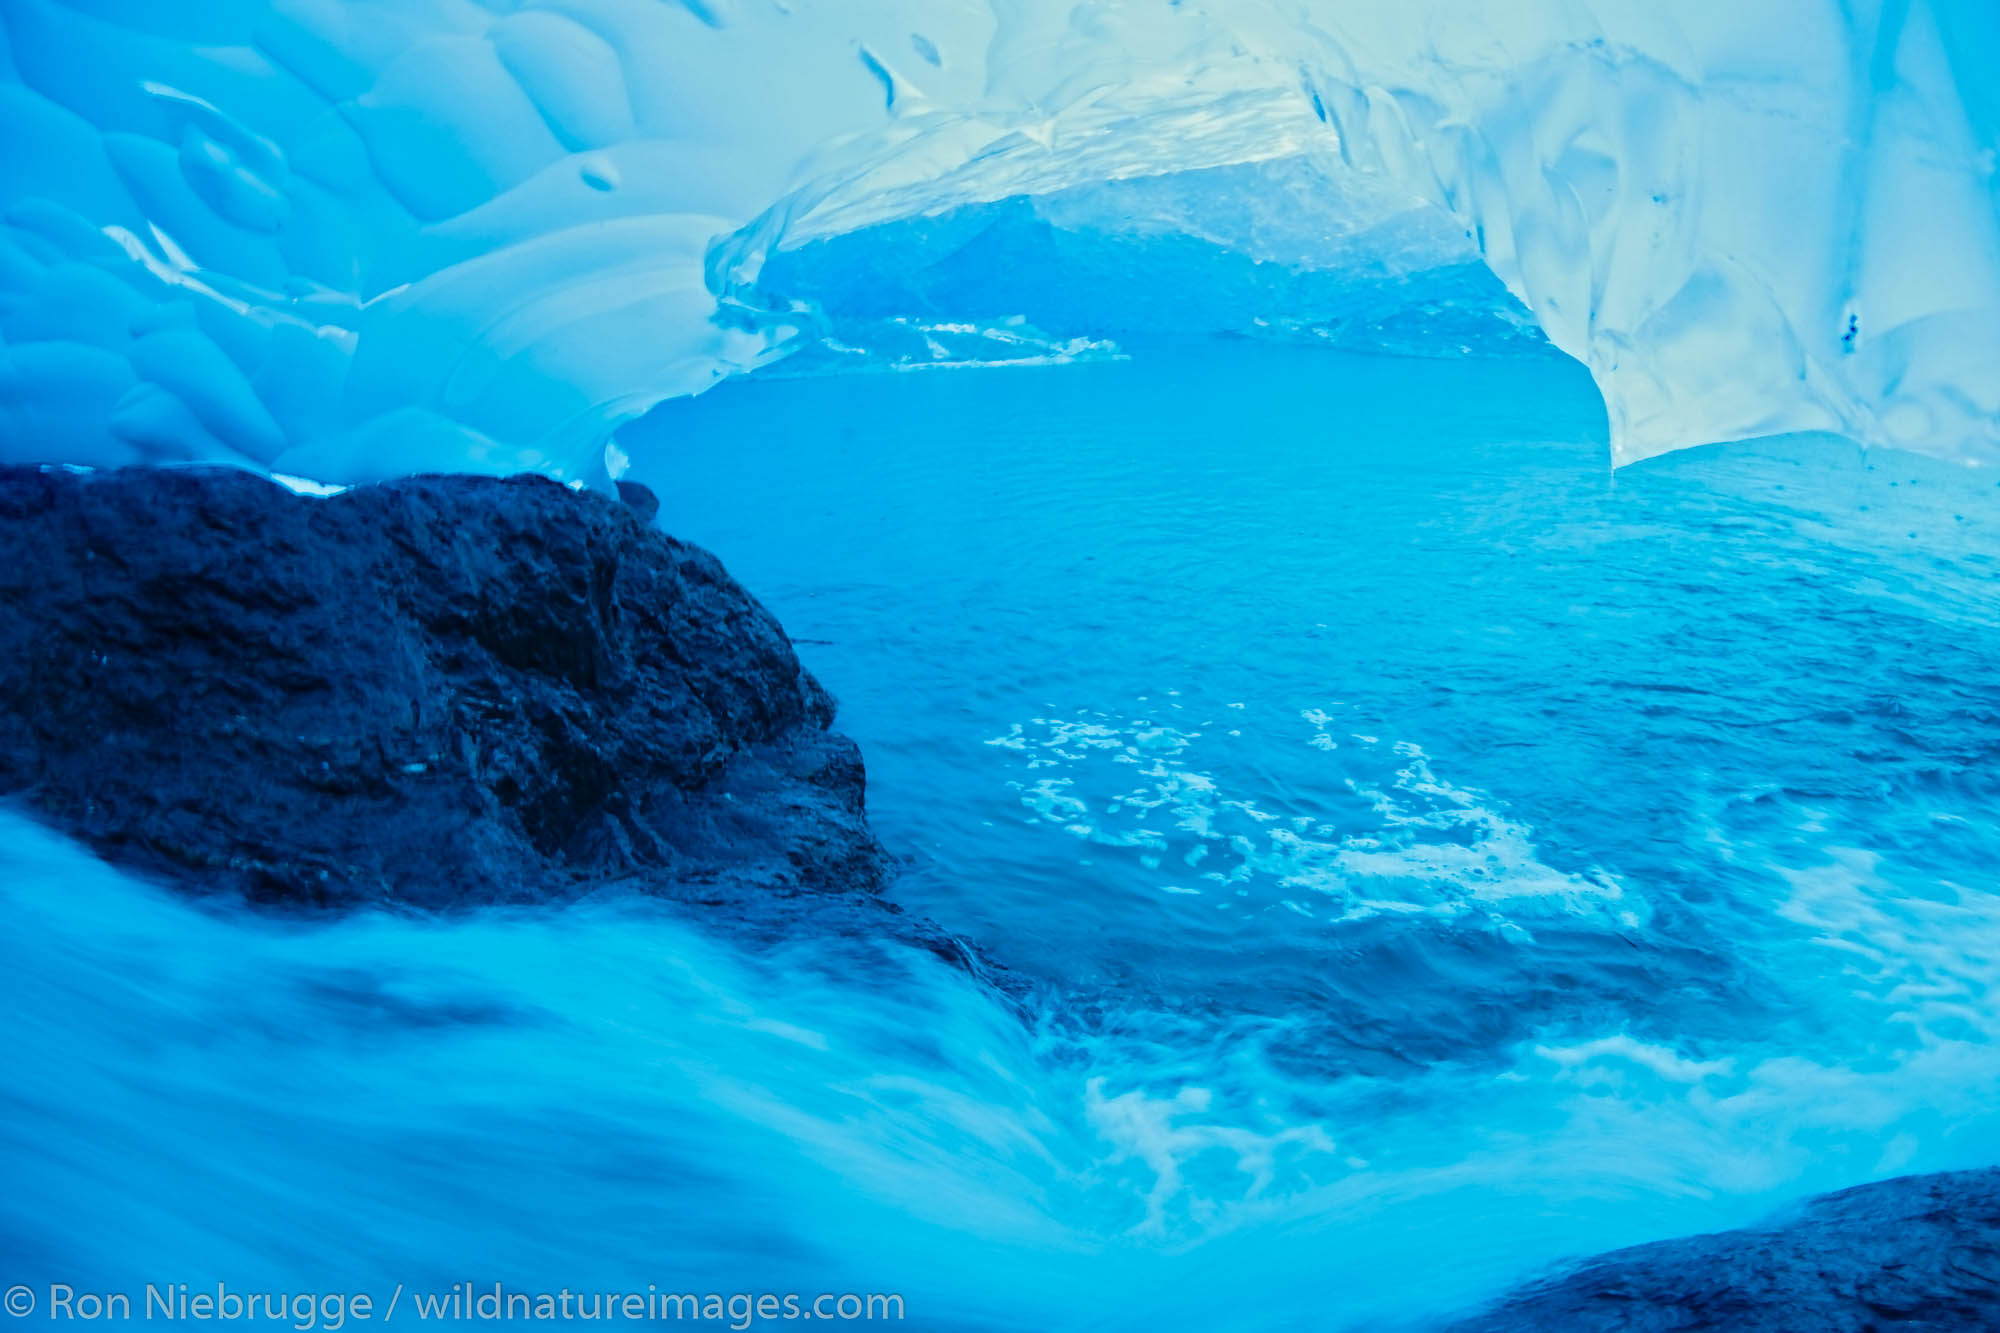 An ice cave in Mendenhall Glacier, Juneau, Alaska.